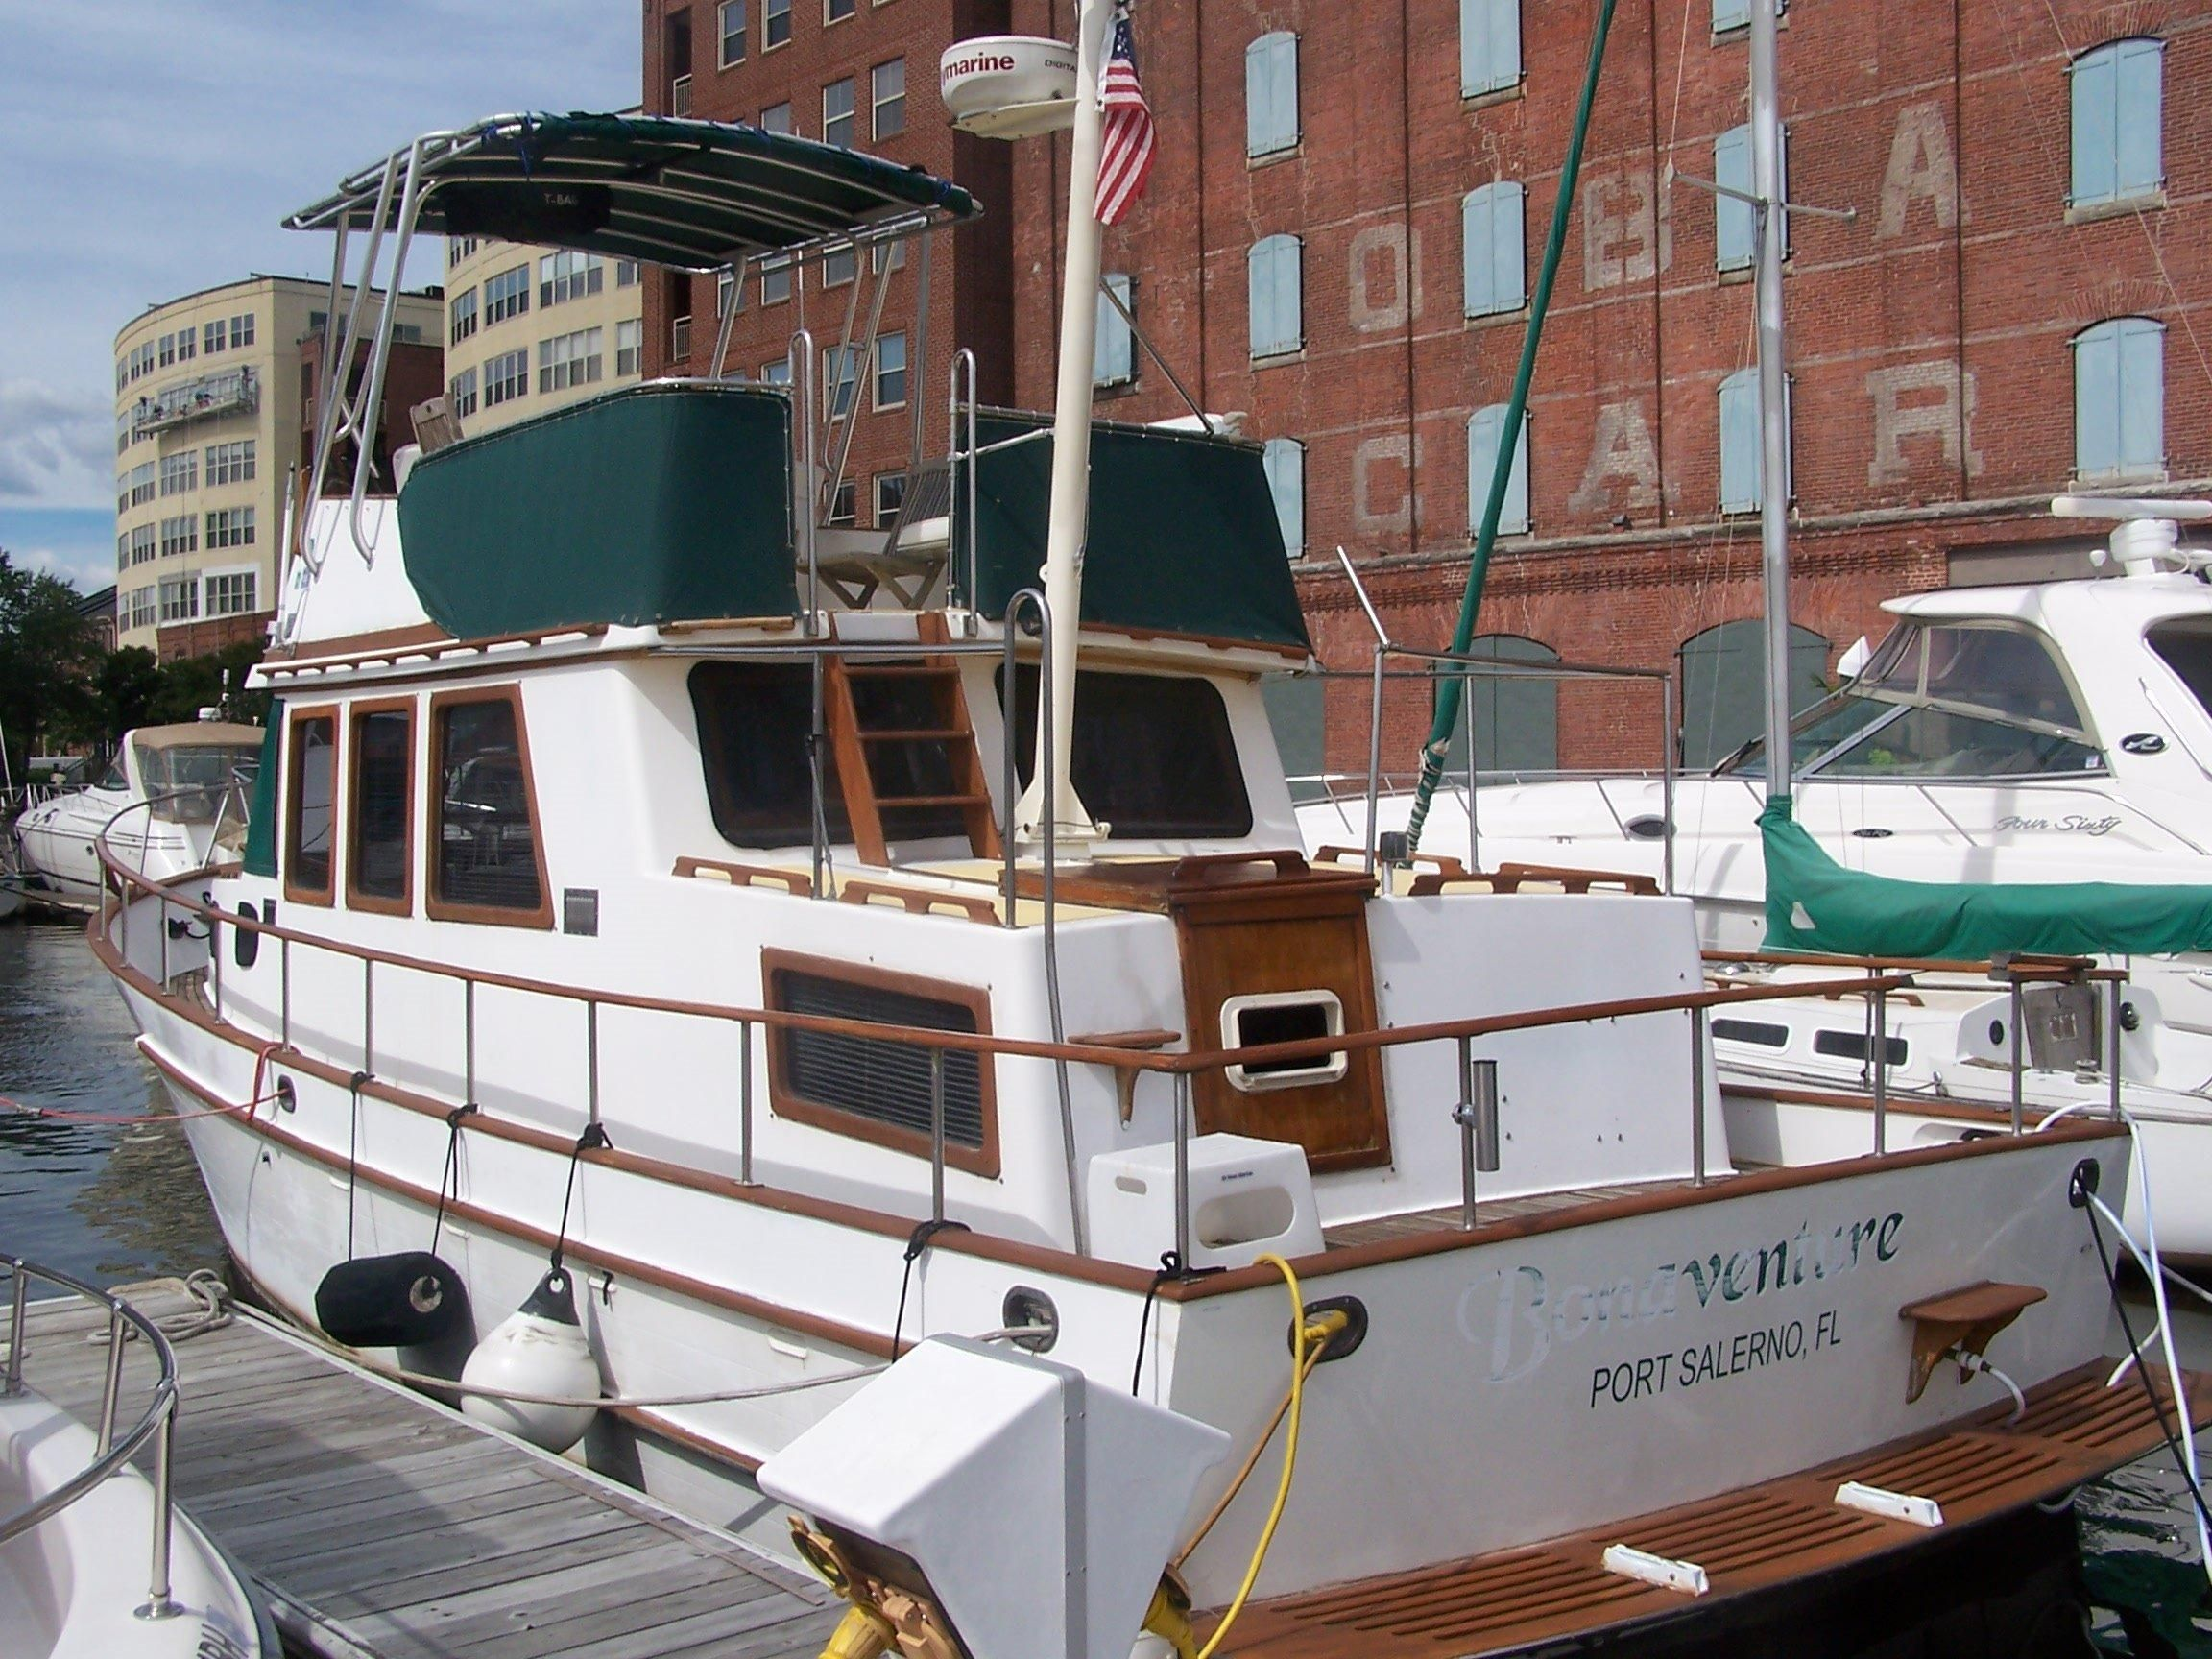 1983 marine trader double cabin power boat for sale www for Outboard motors for sale maryland